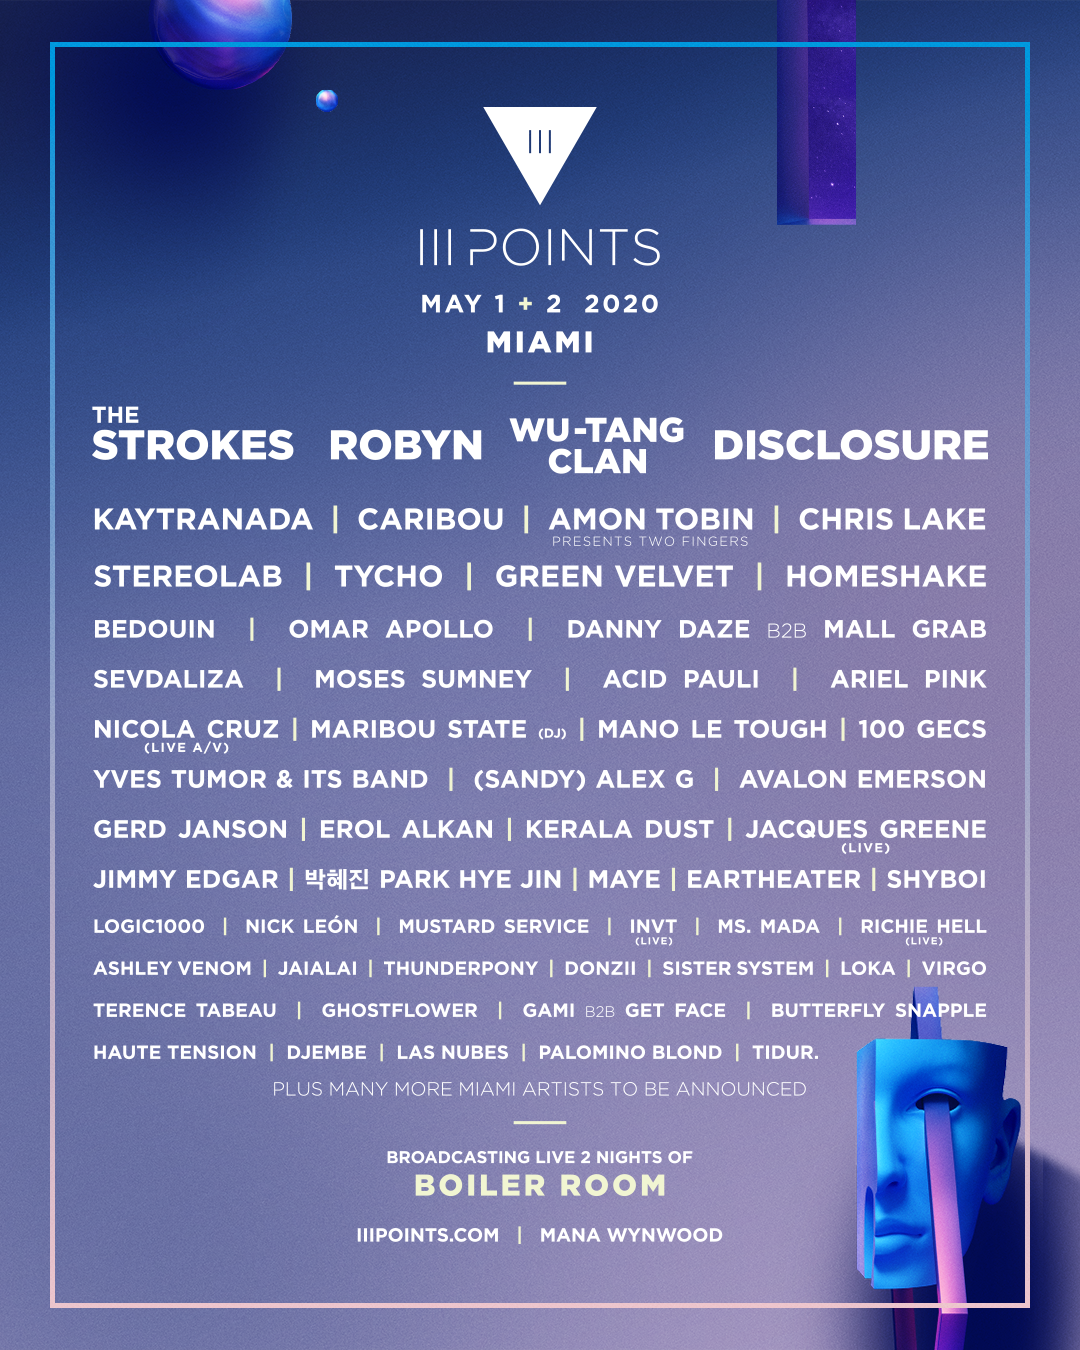 iii points lineup 2020